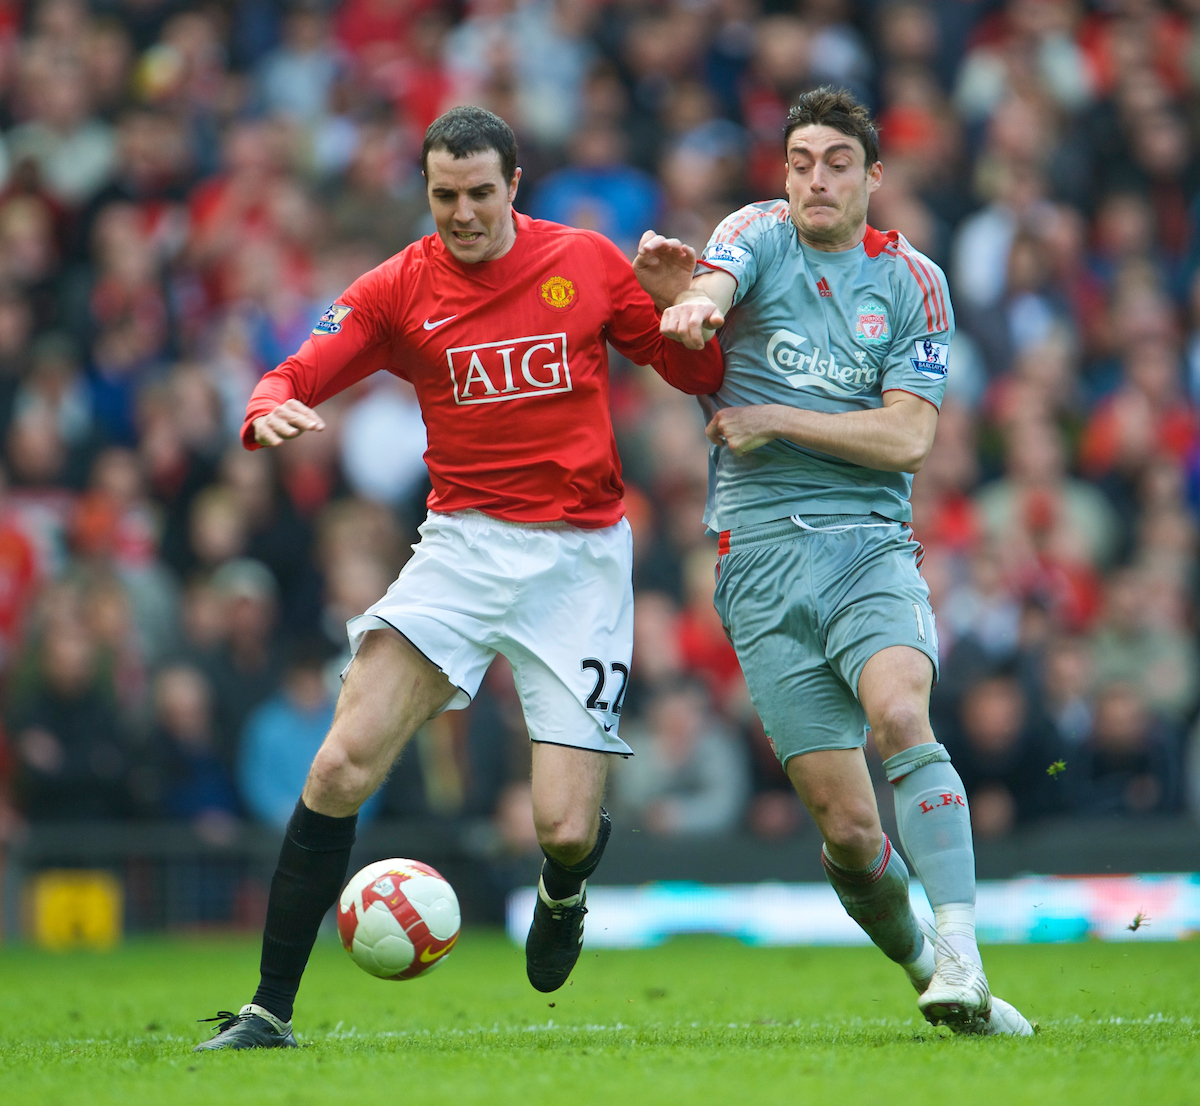 MANCHESTER, ENGLAND - Saturday, March 14, 2009: Liverpool's Albert Riera and Manchester United's John O'Shea during the Premiership match at Old Trafford. (Photo by David Rawcliffe/Propaganda)